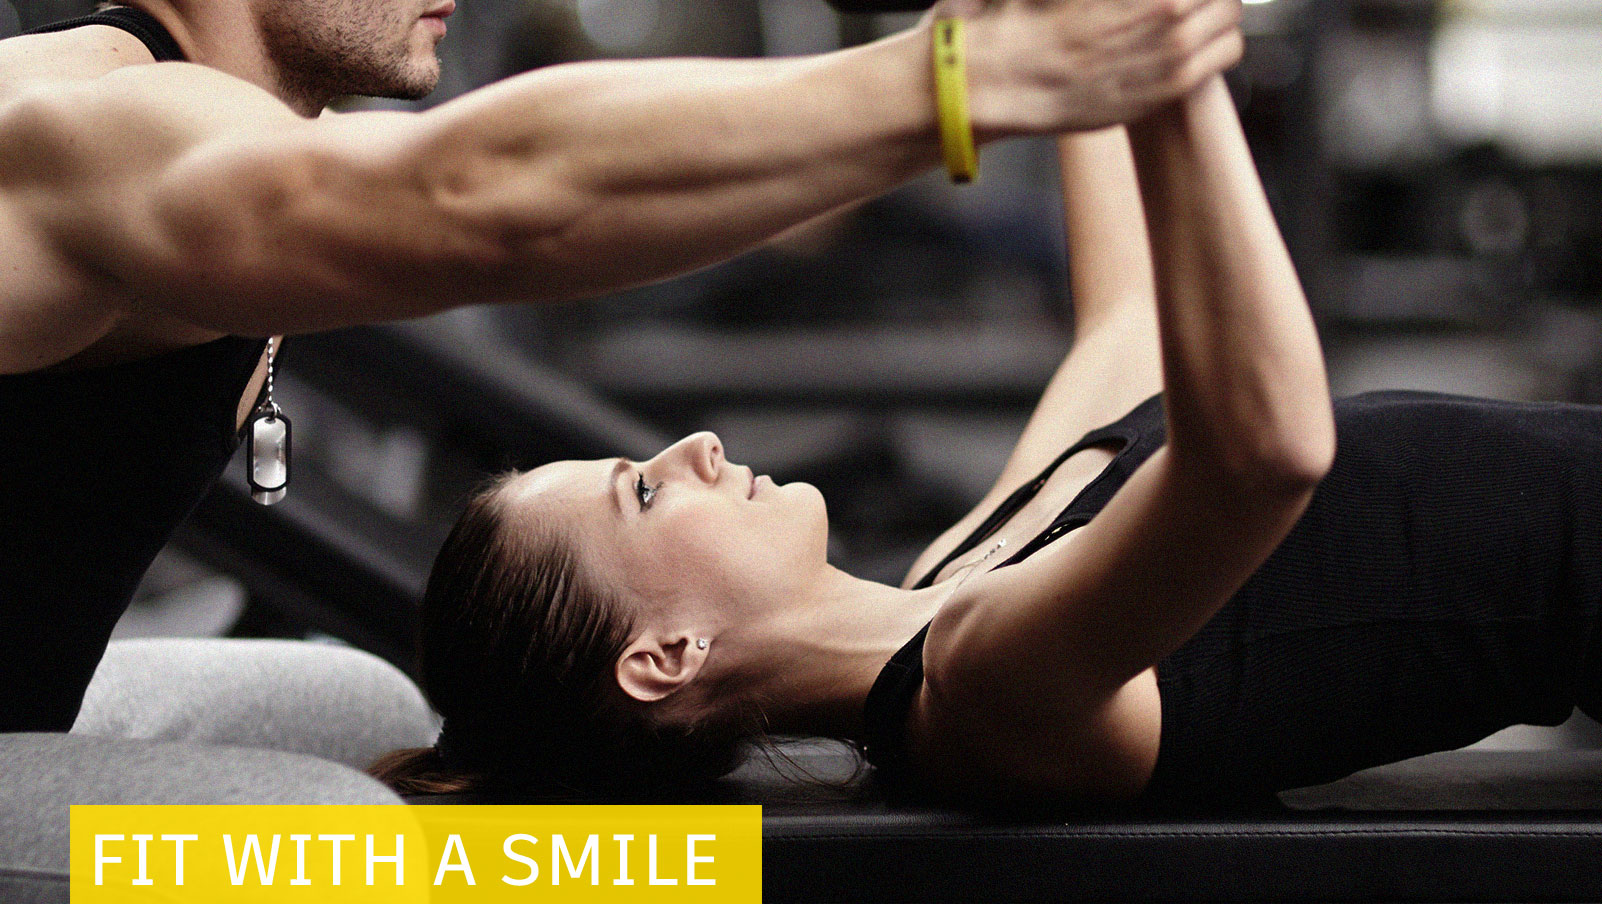 Fit with a smile